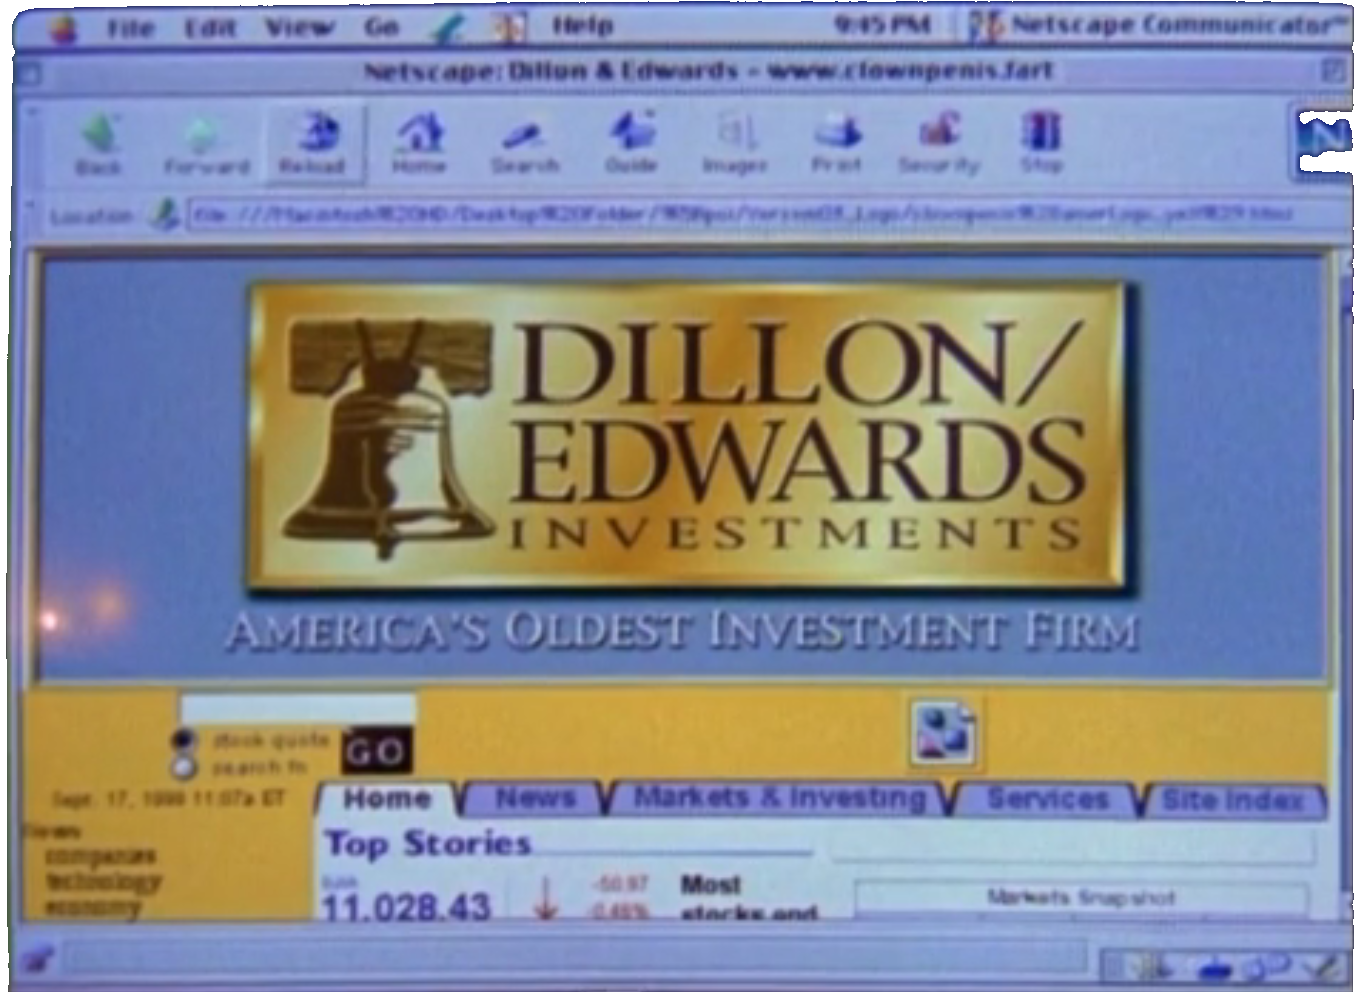 DillonEdwards